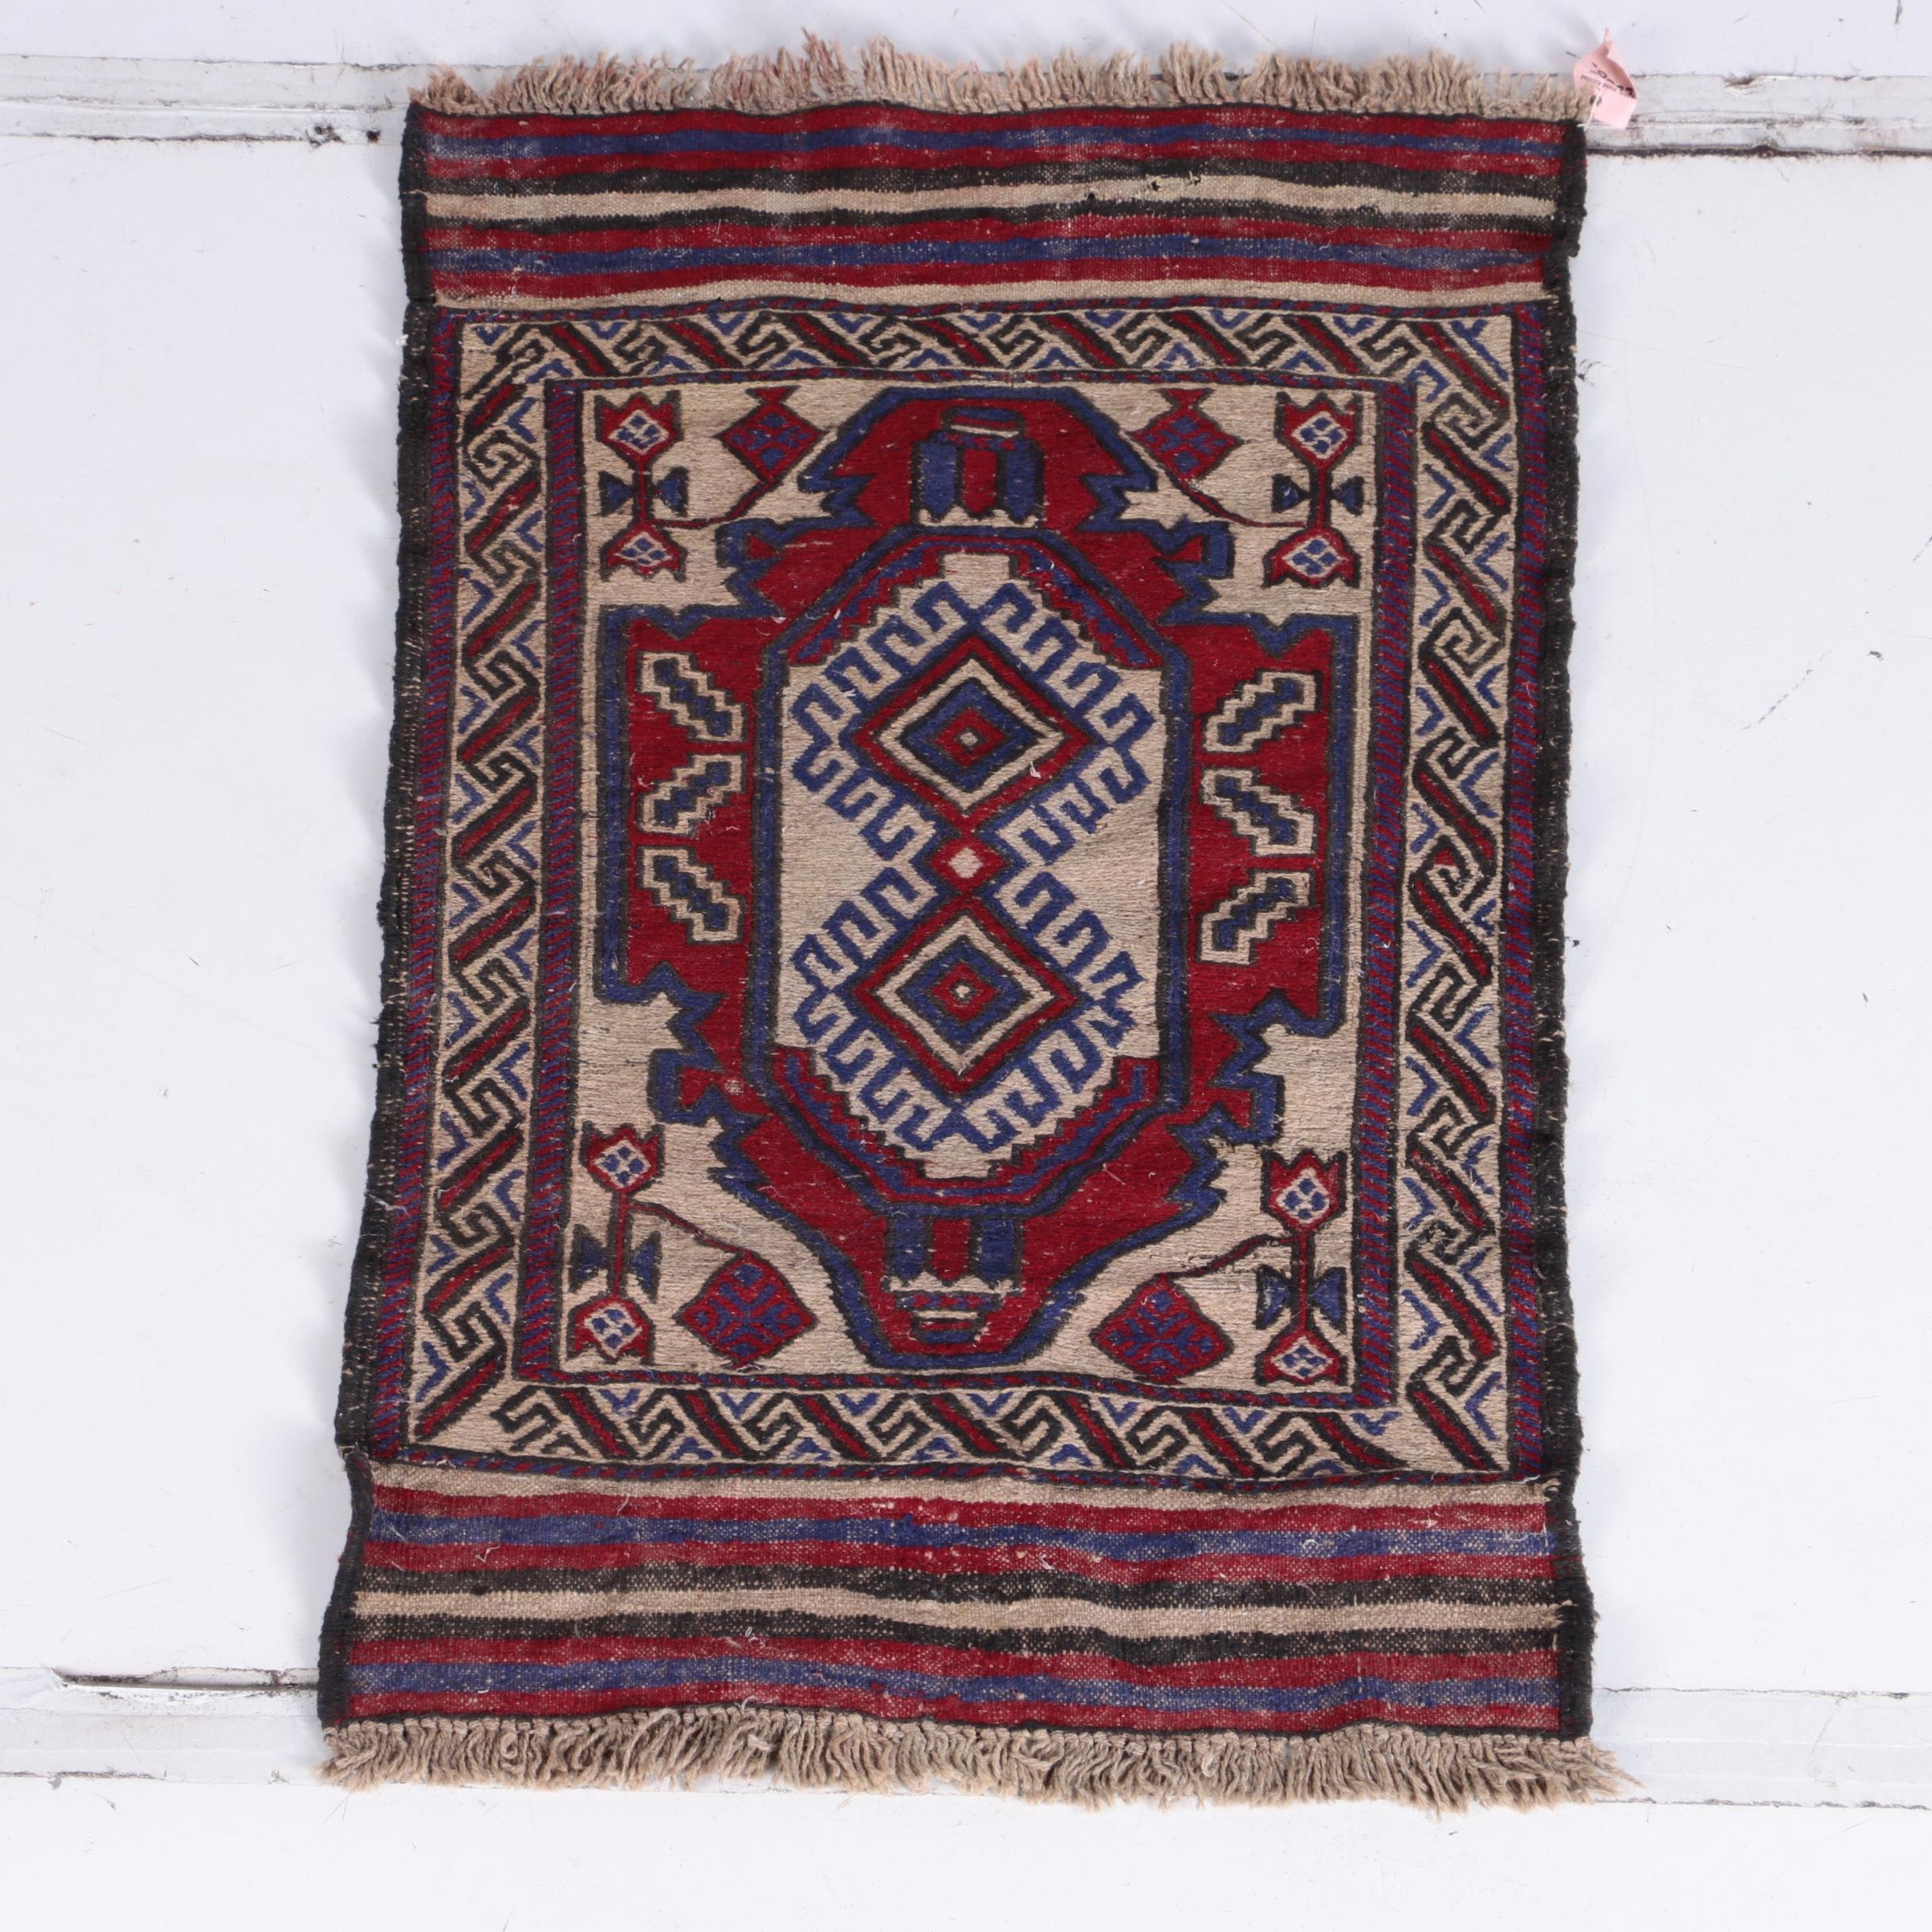 Semi-Antique Handwoven Central Asian Accent Rug/Wall Hanging